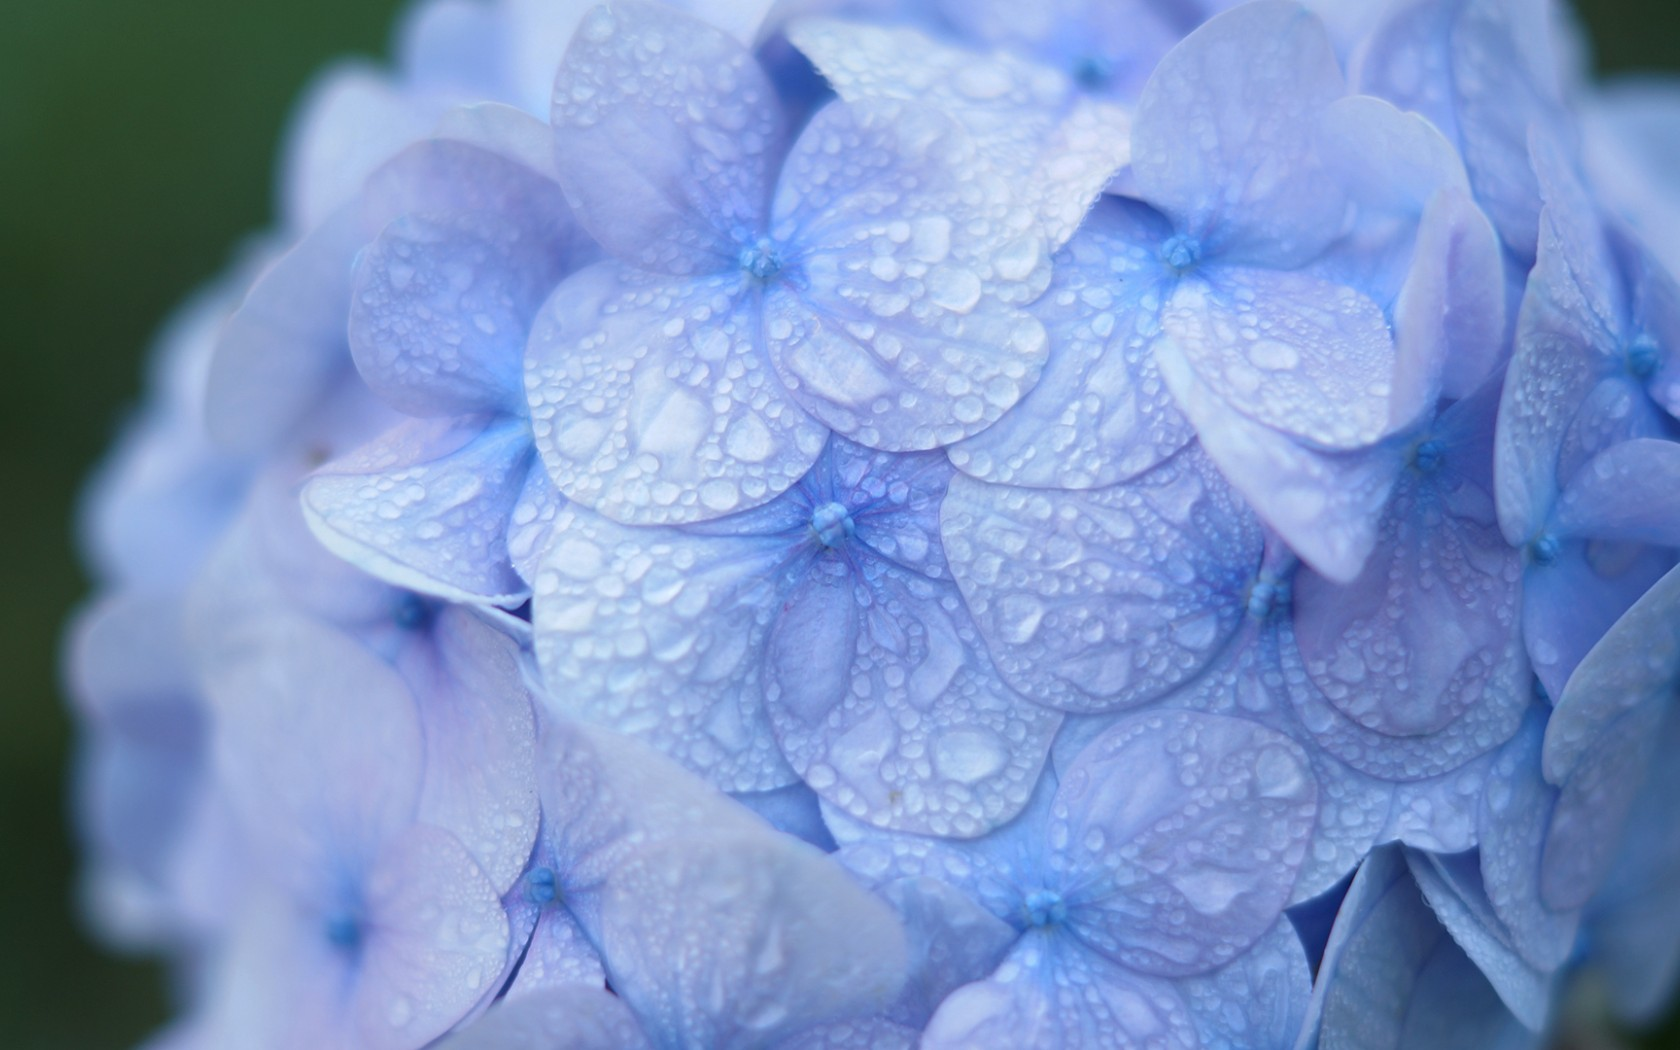 Cool 3d Love Wallpapers Hydrangea A2 Hd Desktop Wallpapers 4k Hd